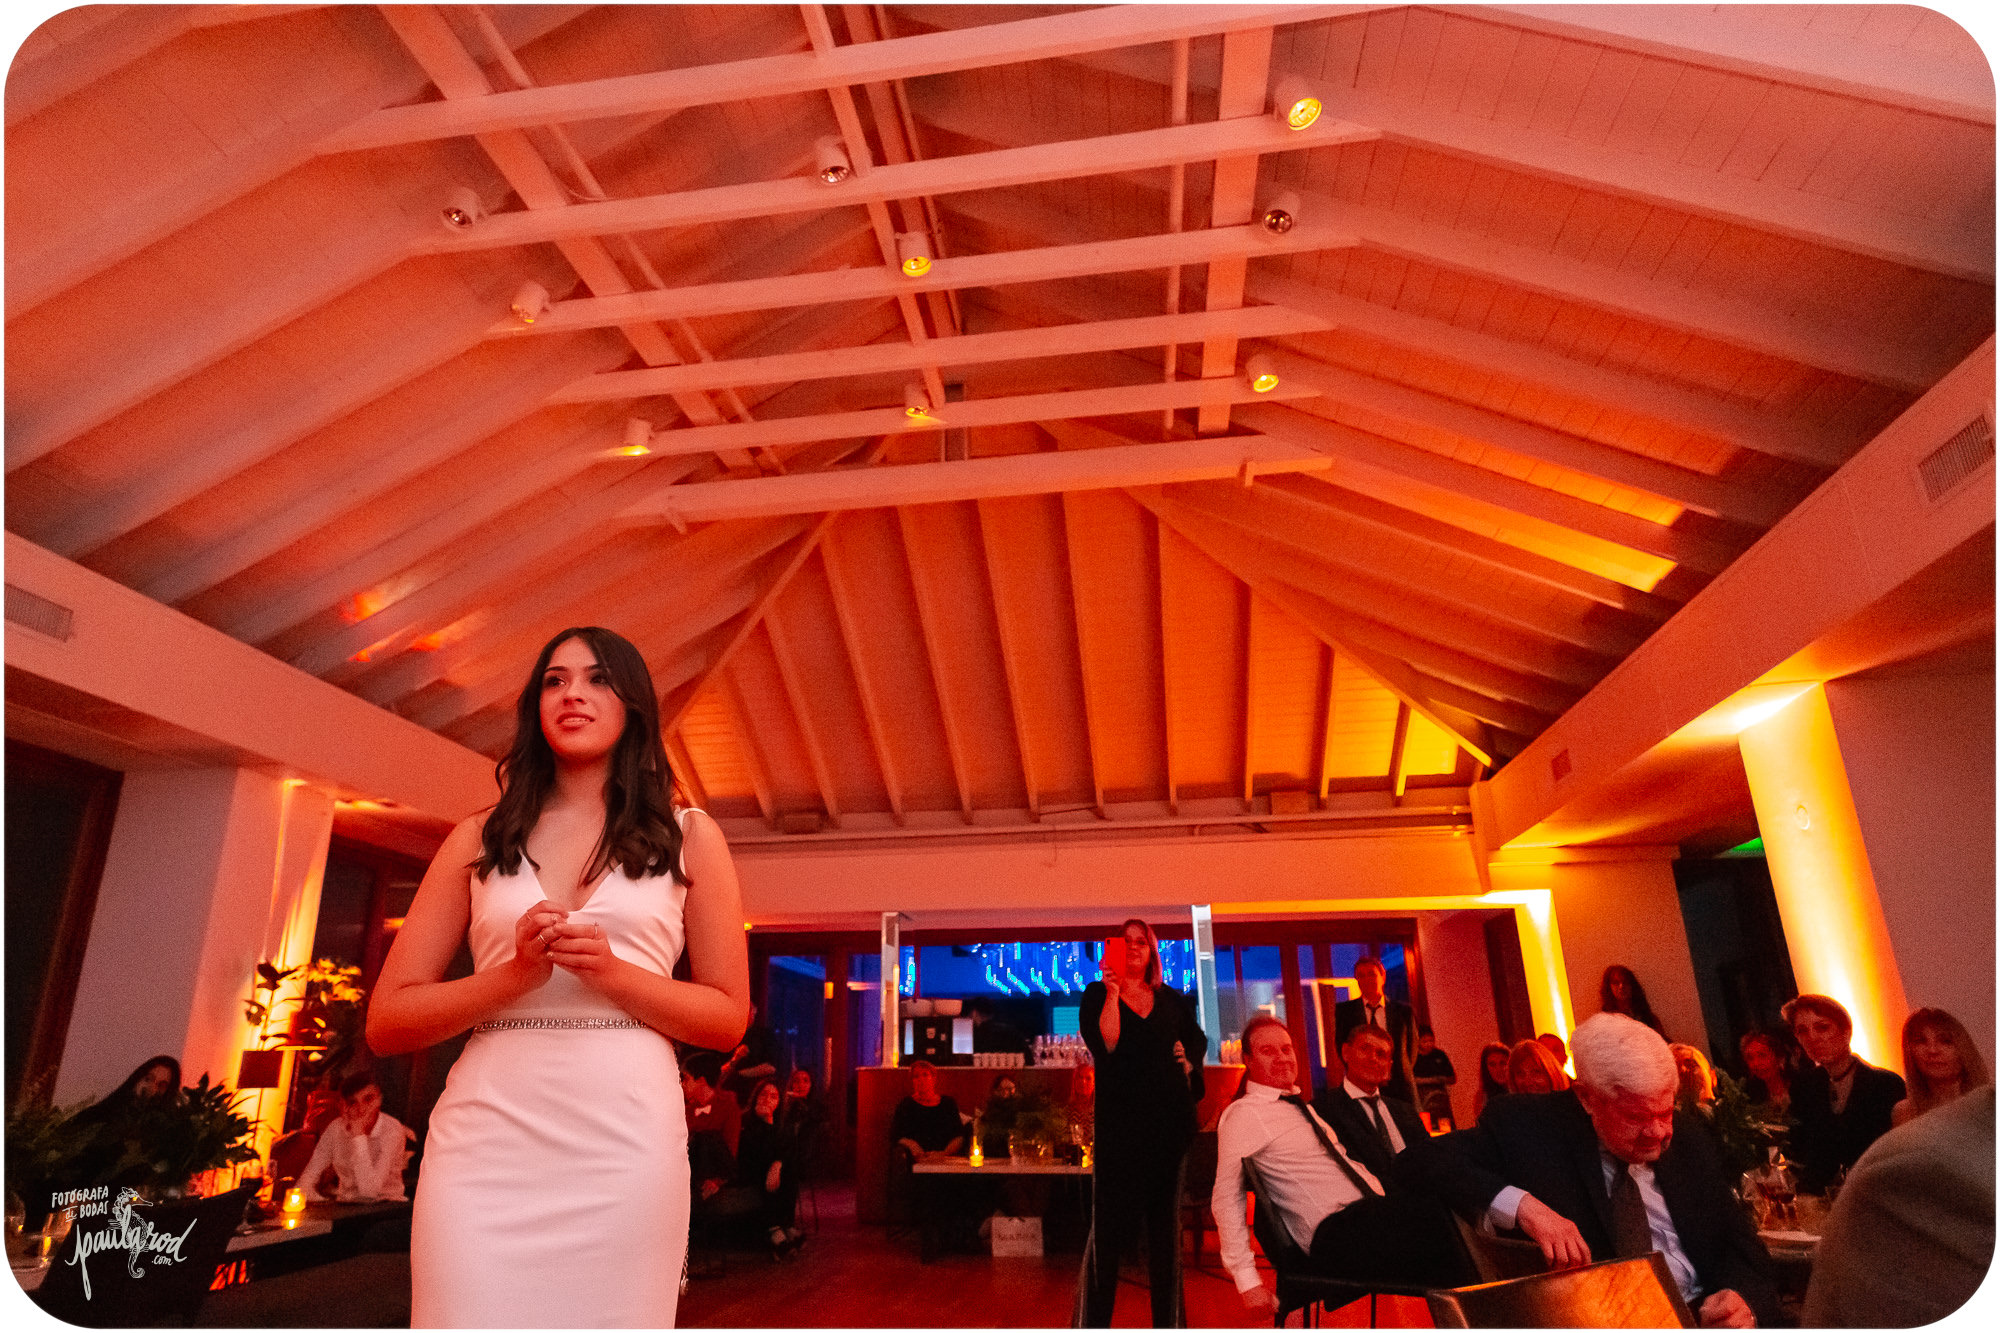 fotografia_documental_para_quinces_en_castelar (2).jpg